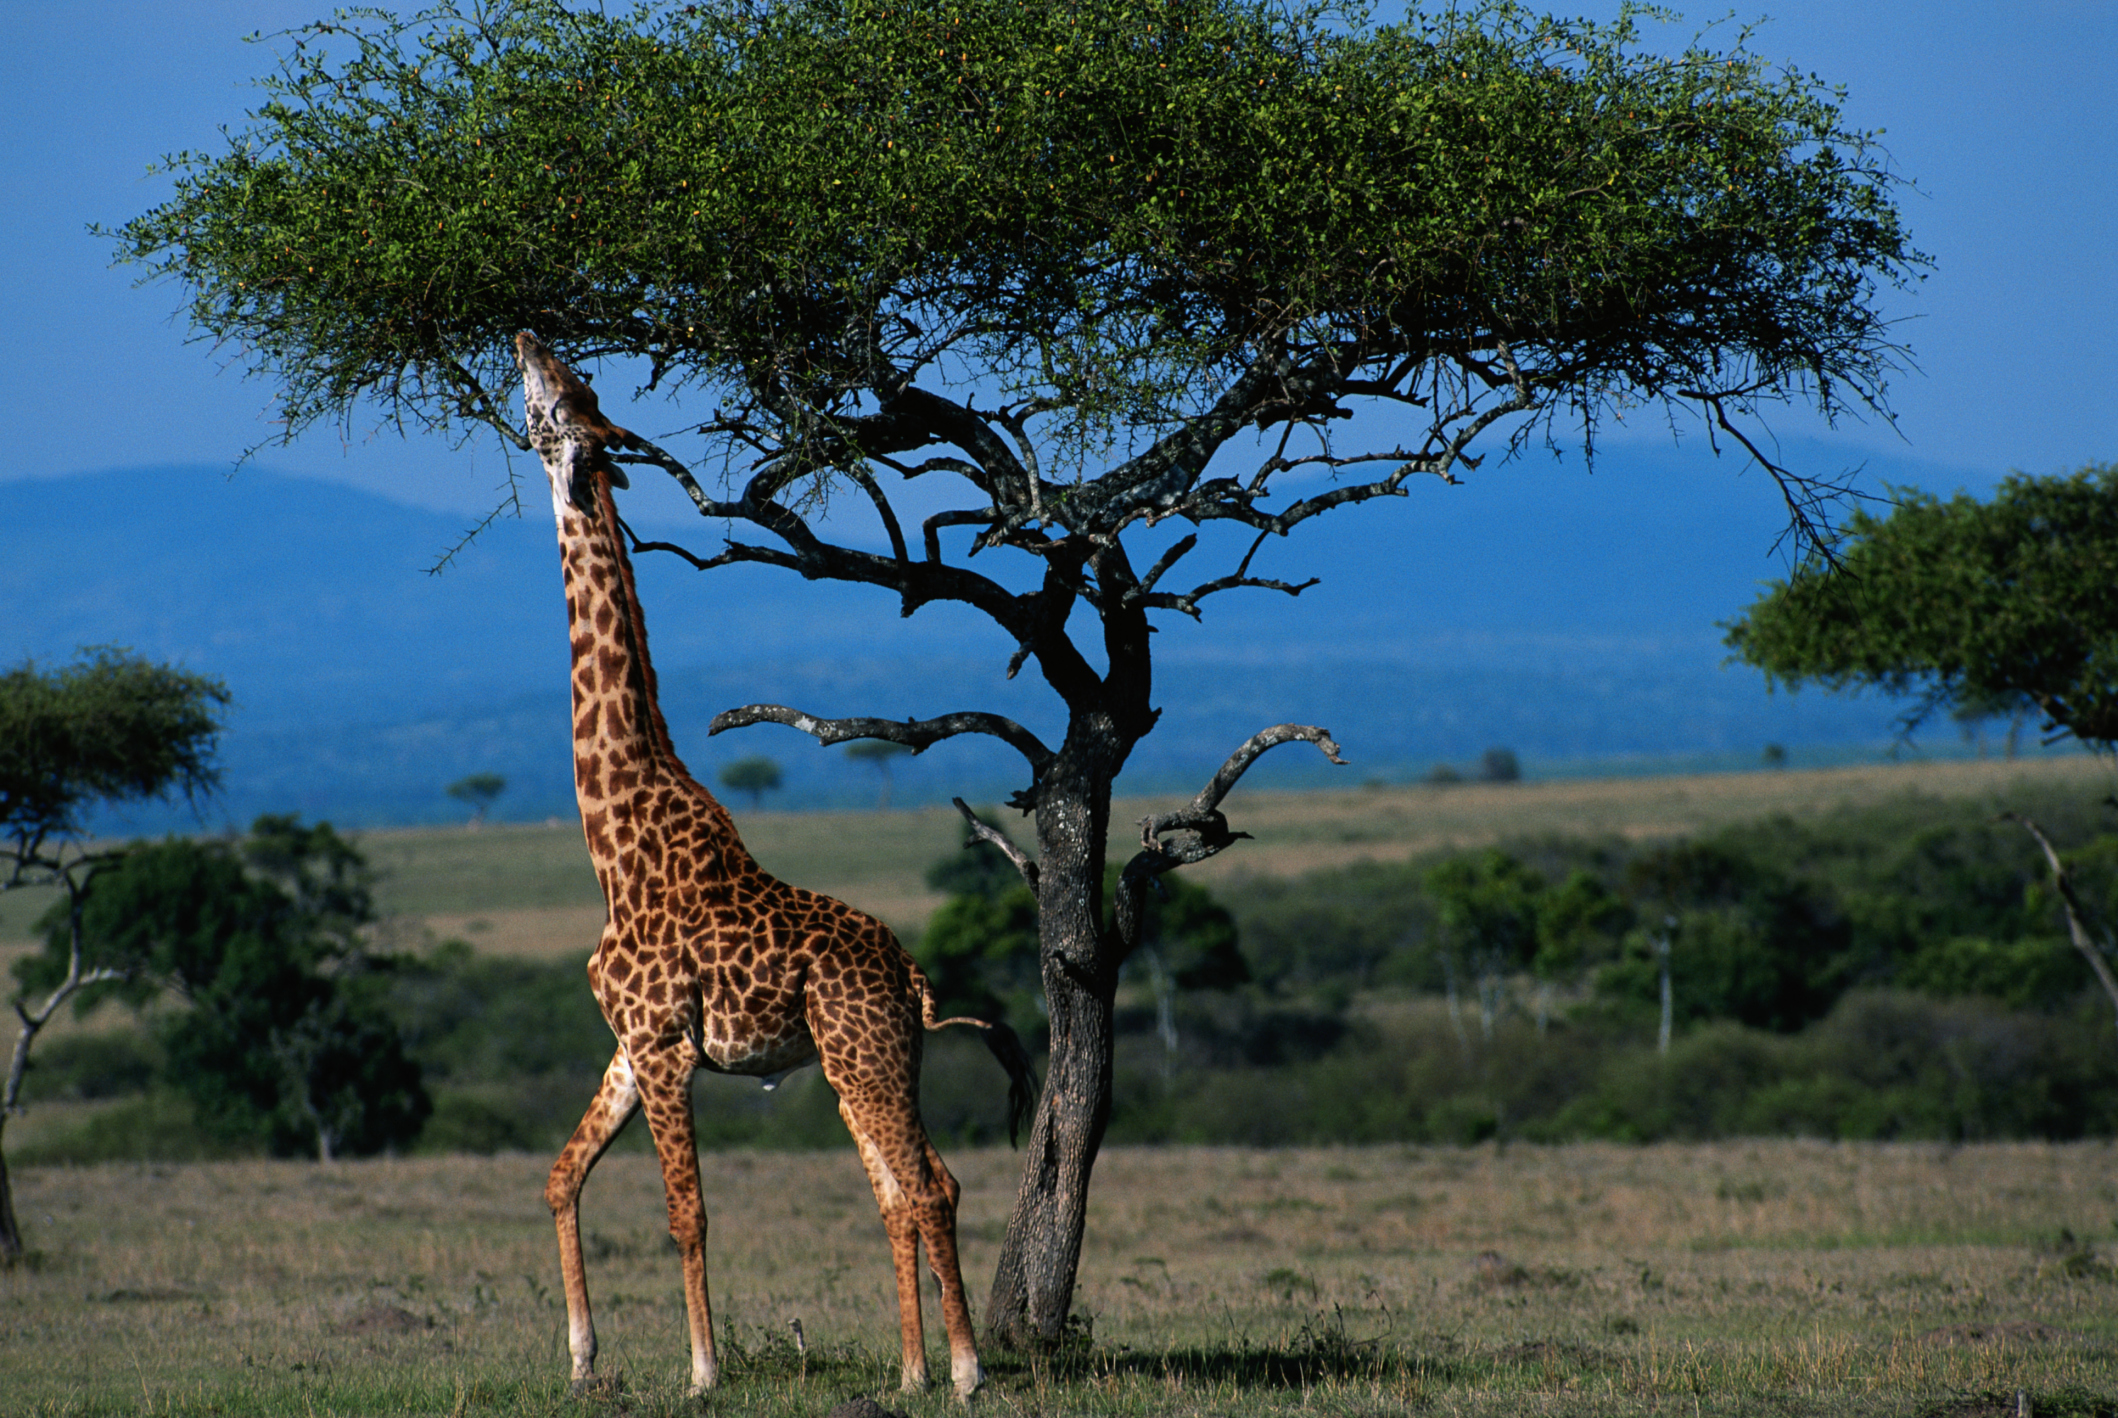 Giraffes - unusual honeymoons